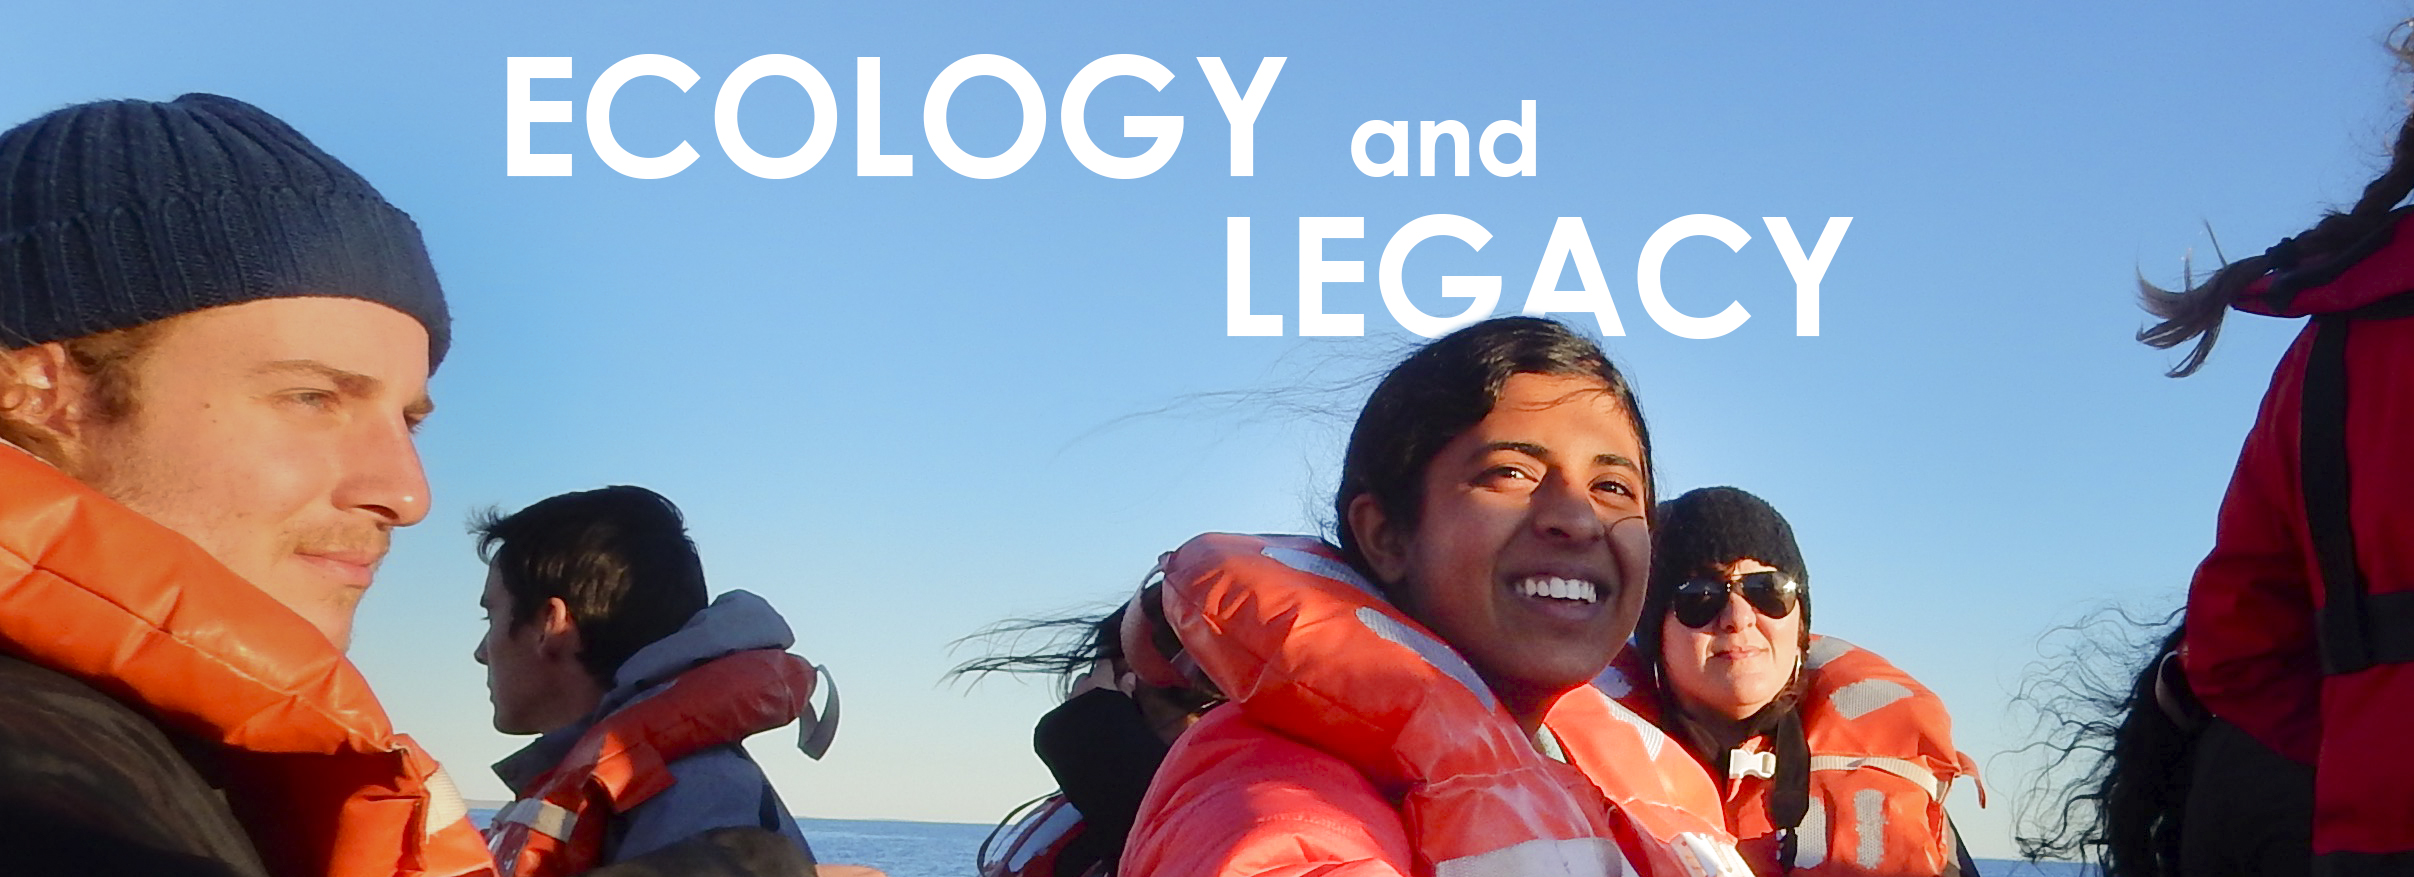 ecology and legacy banner